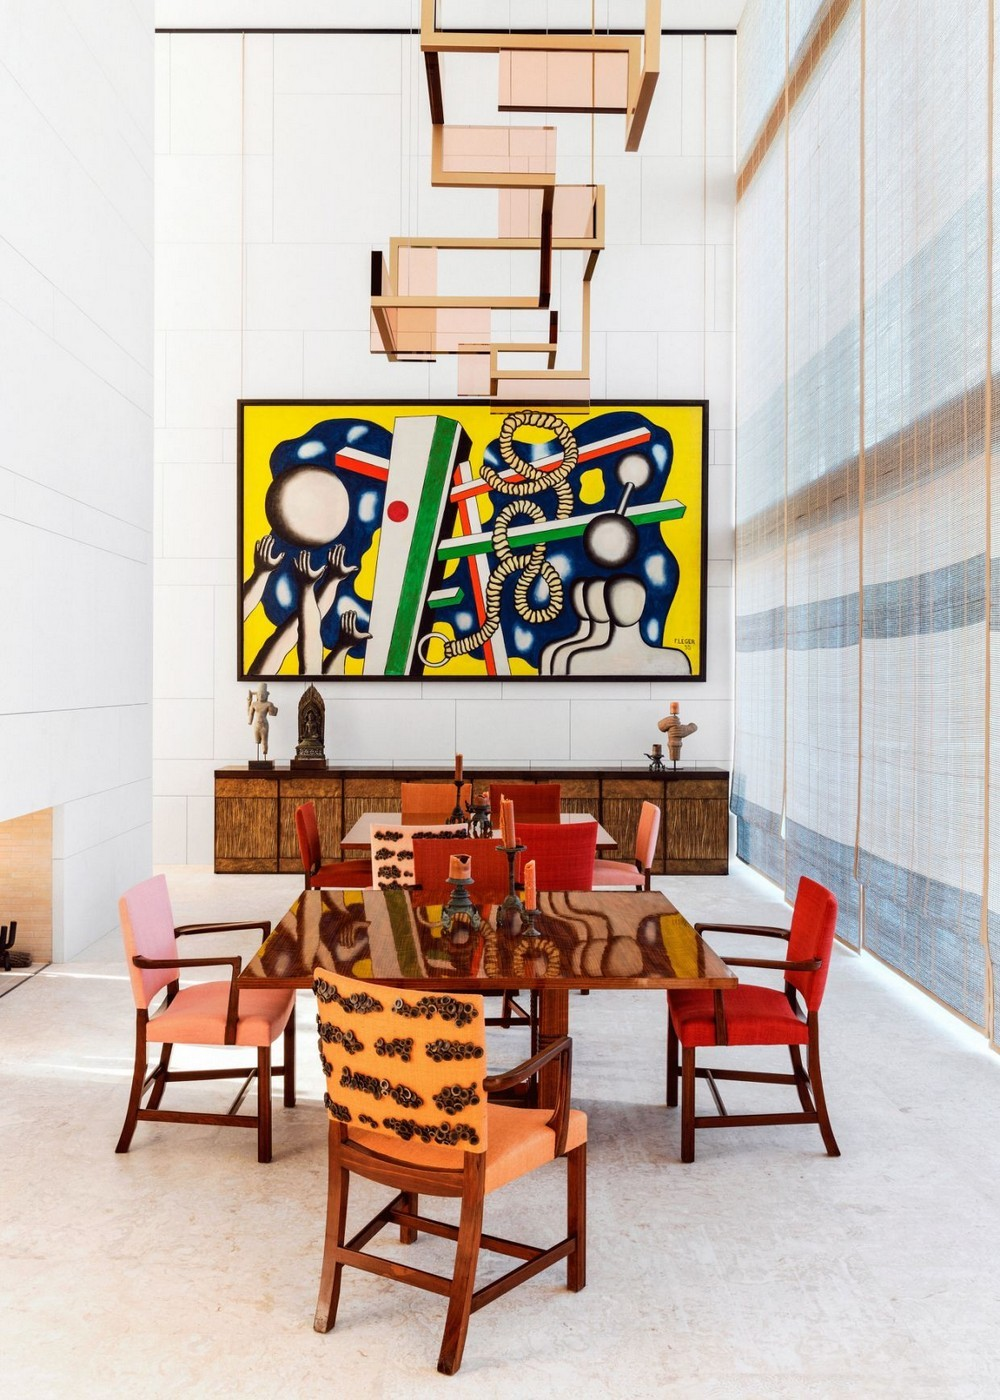 Materiality, Texture, Scale Light: Dining Rooms by Peter Marino peter marino Materiality, Texture, Scale Light: Dining Rooms by Peter Marino 1 Yahoo News